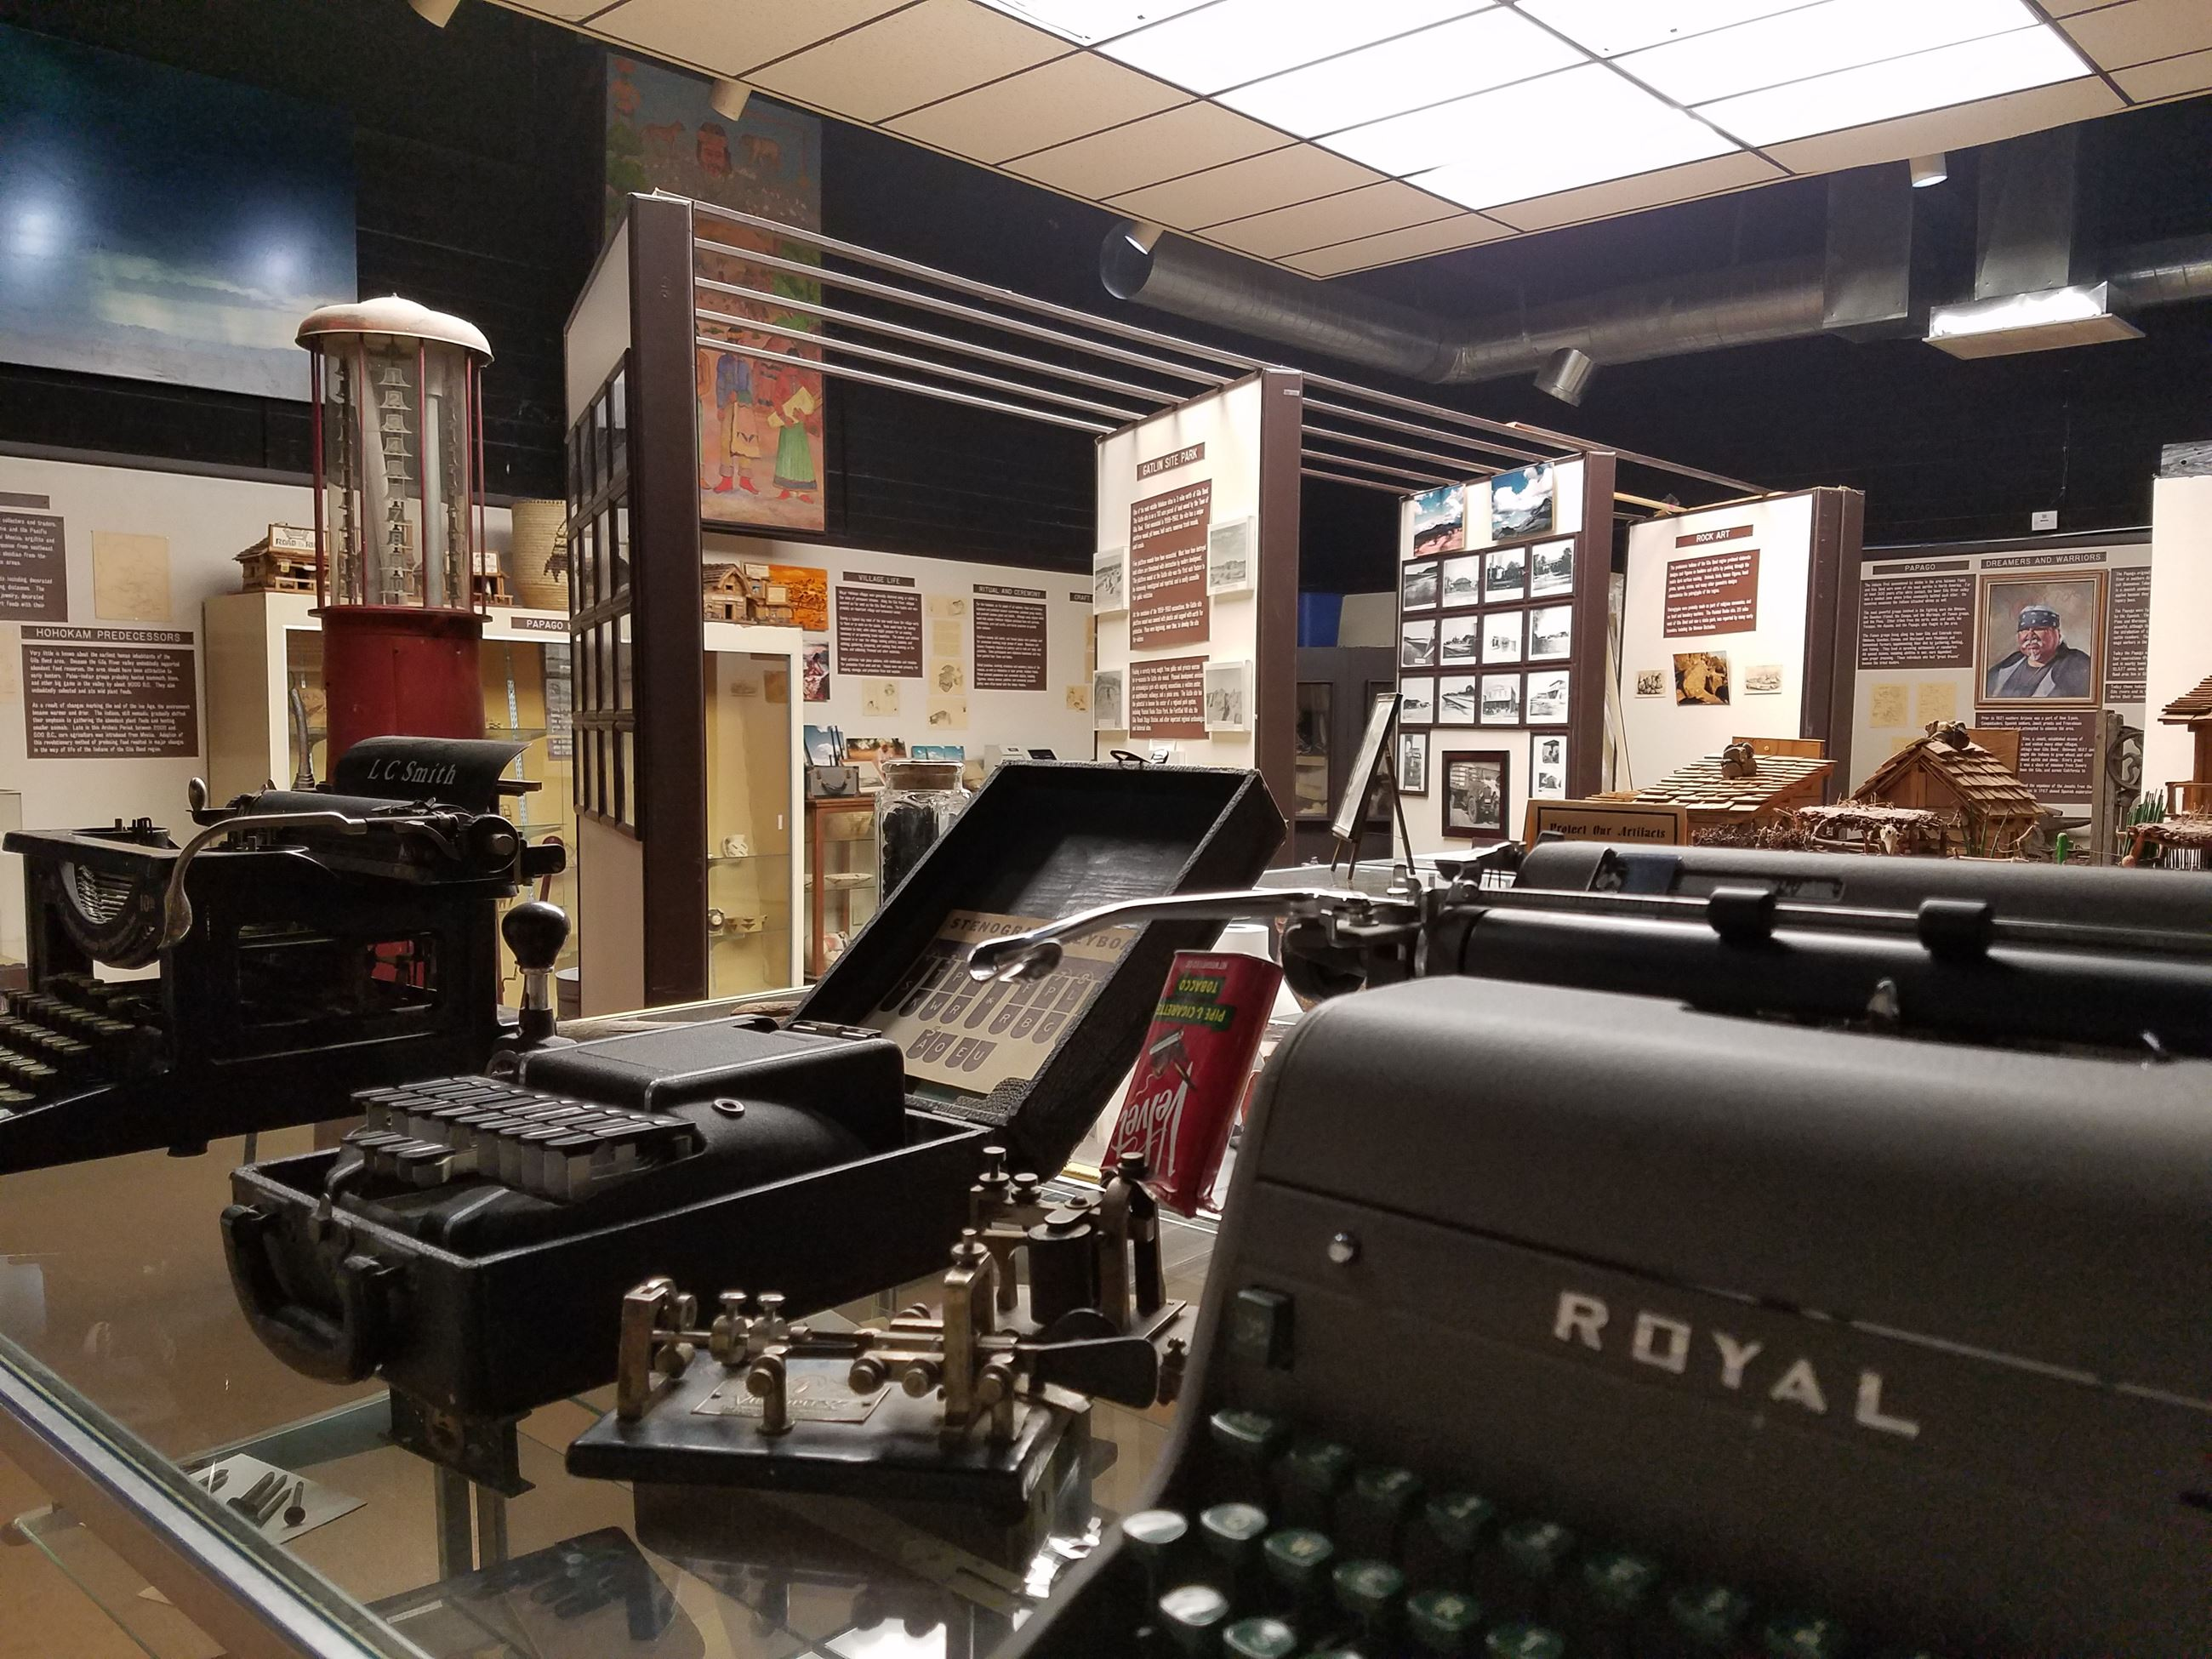 Museum view from front entrance with typewriter collection in front and new display cases at back